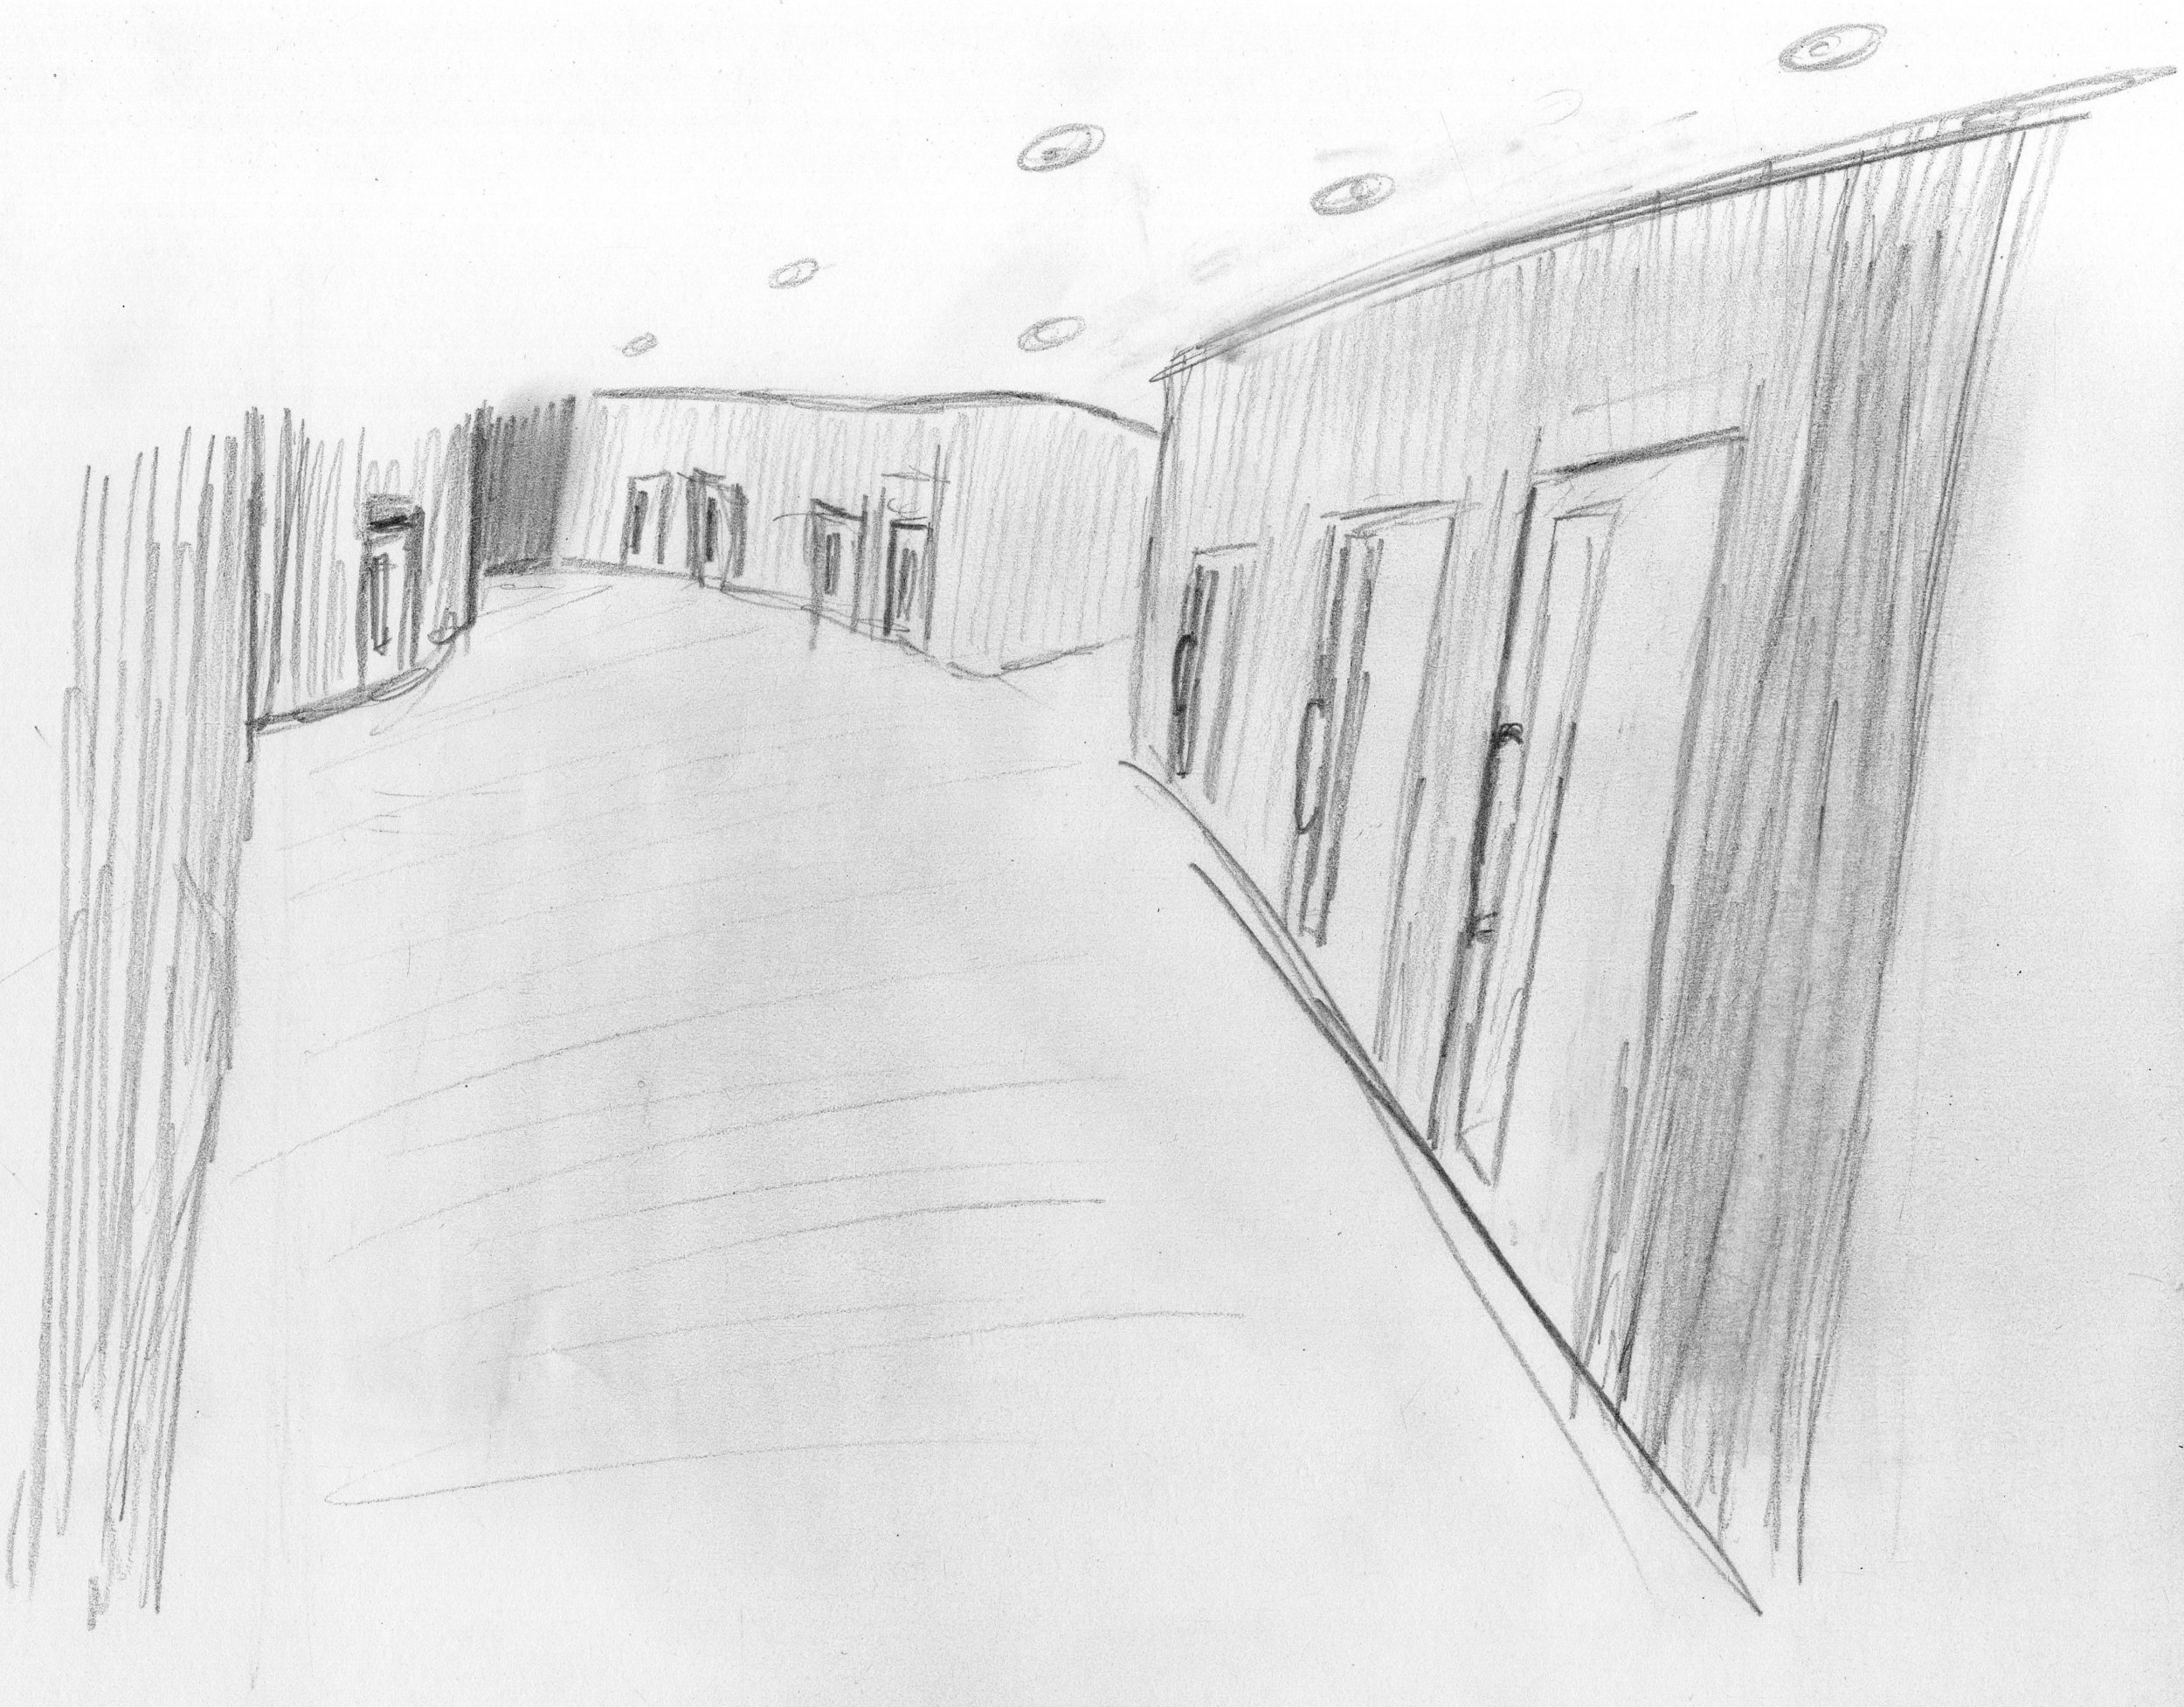 Corridor to therapy rooms.